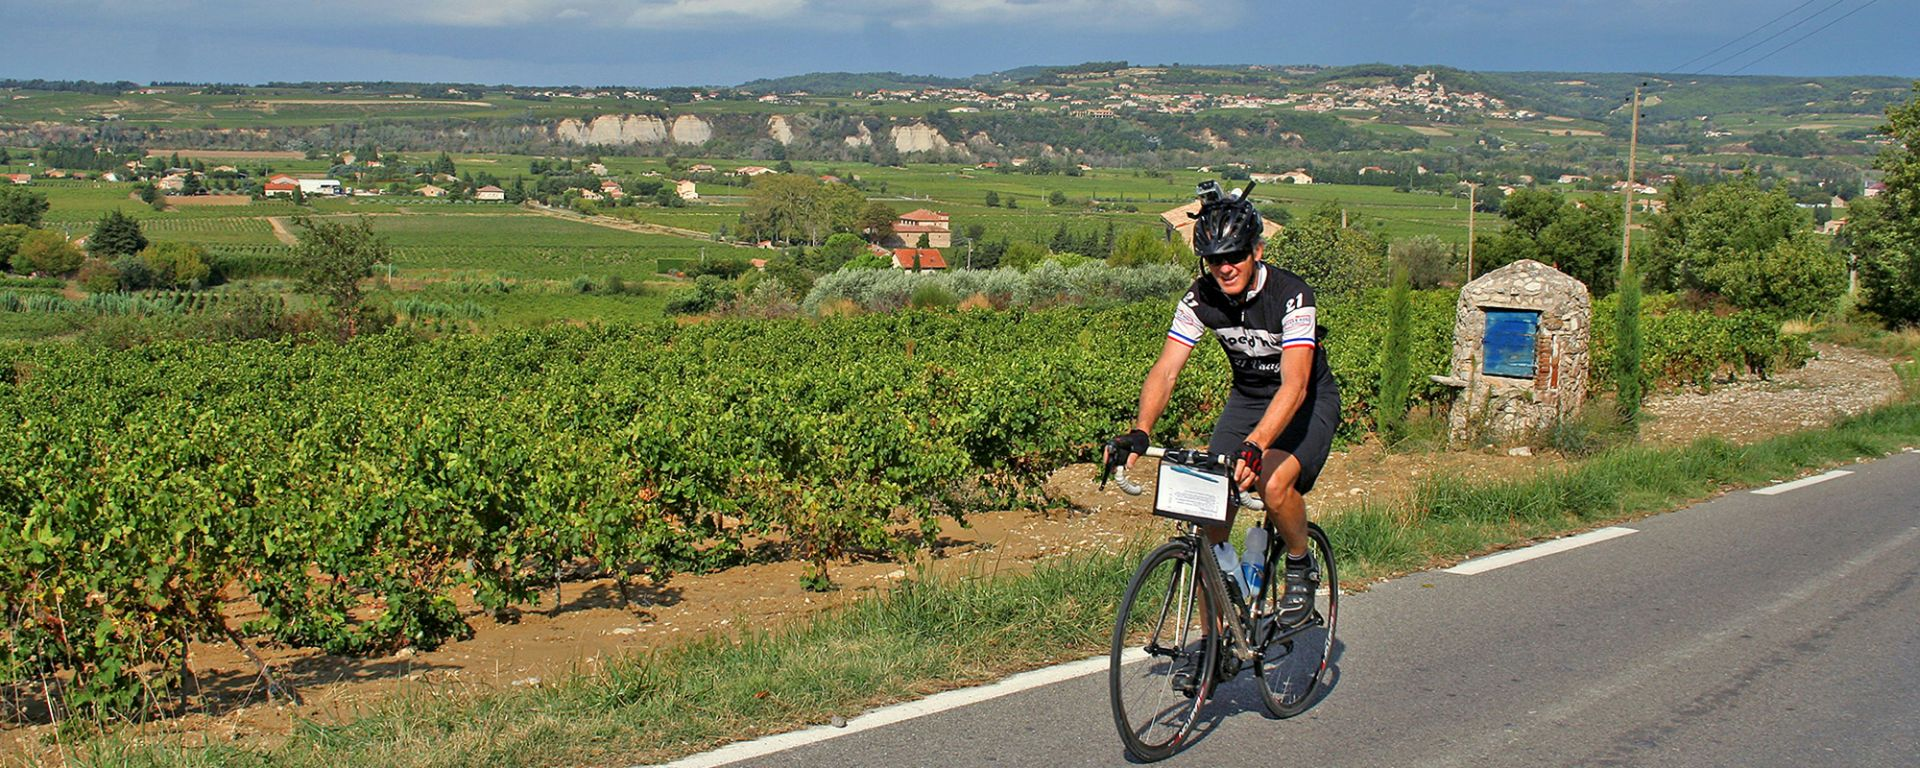 Randonnee Tours offers cycling tours in Provence, France